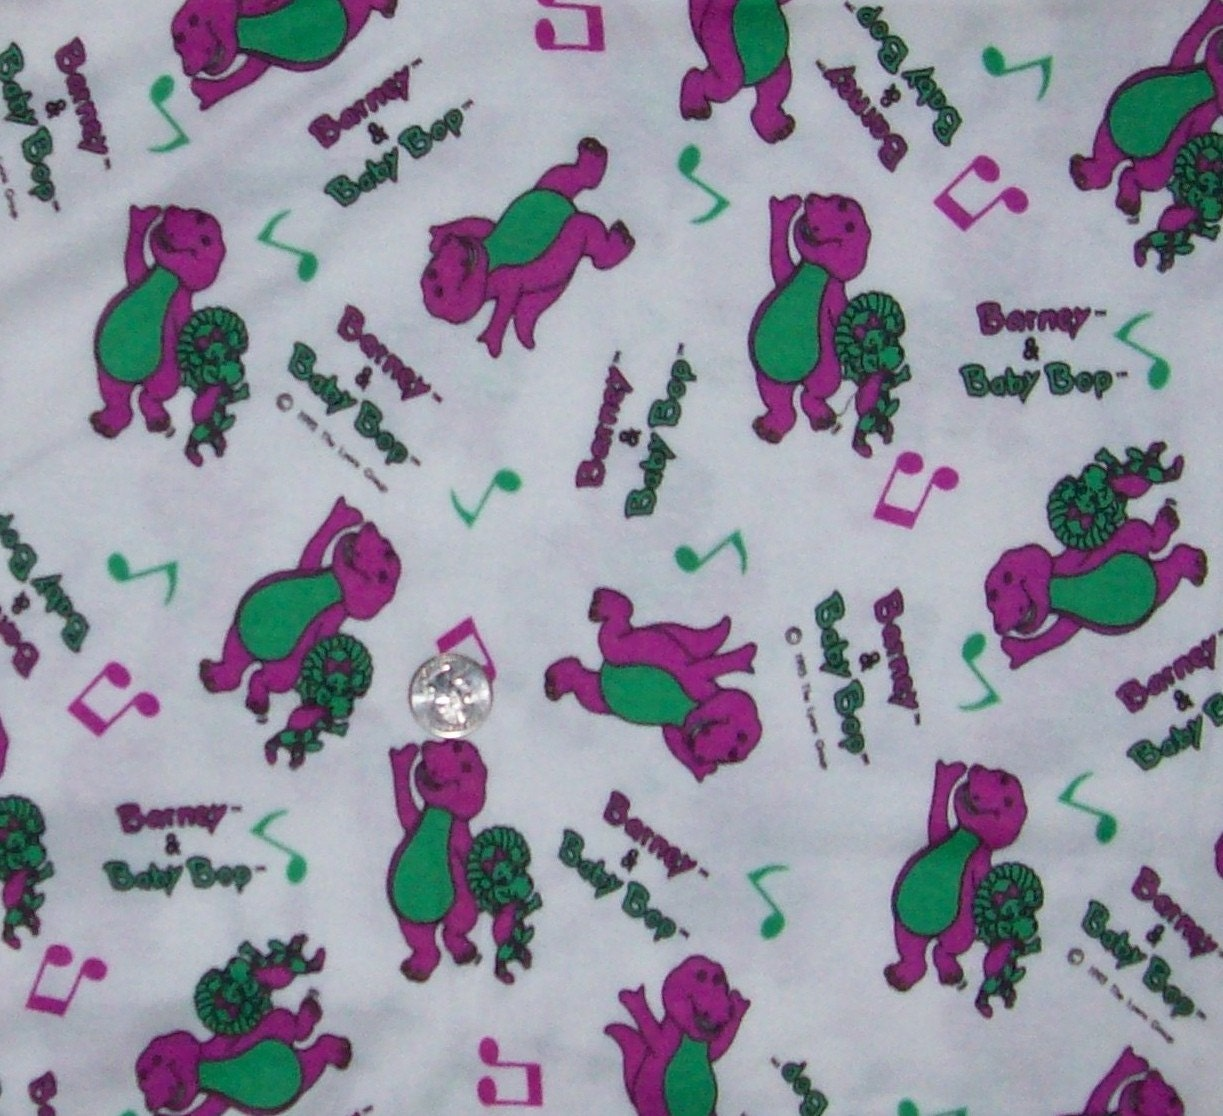 barney fabric knit material 1 2 yards purple dinosaur